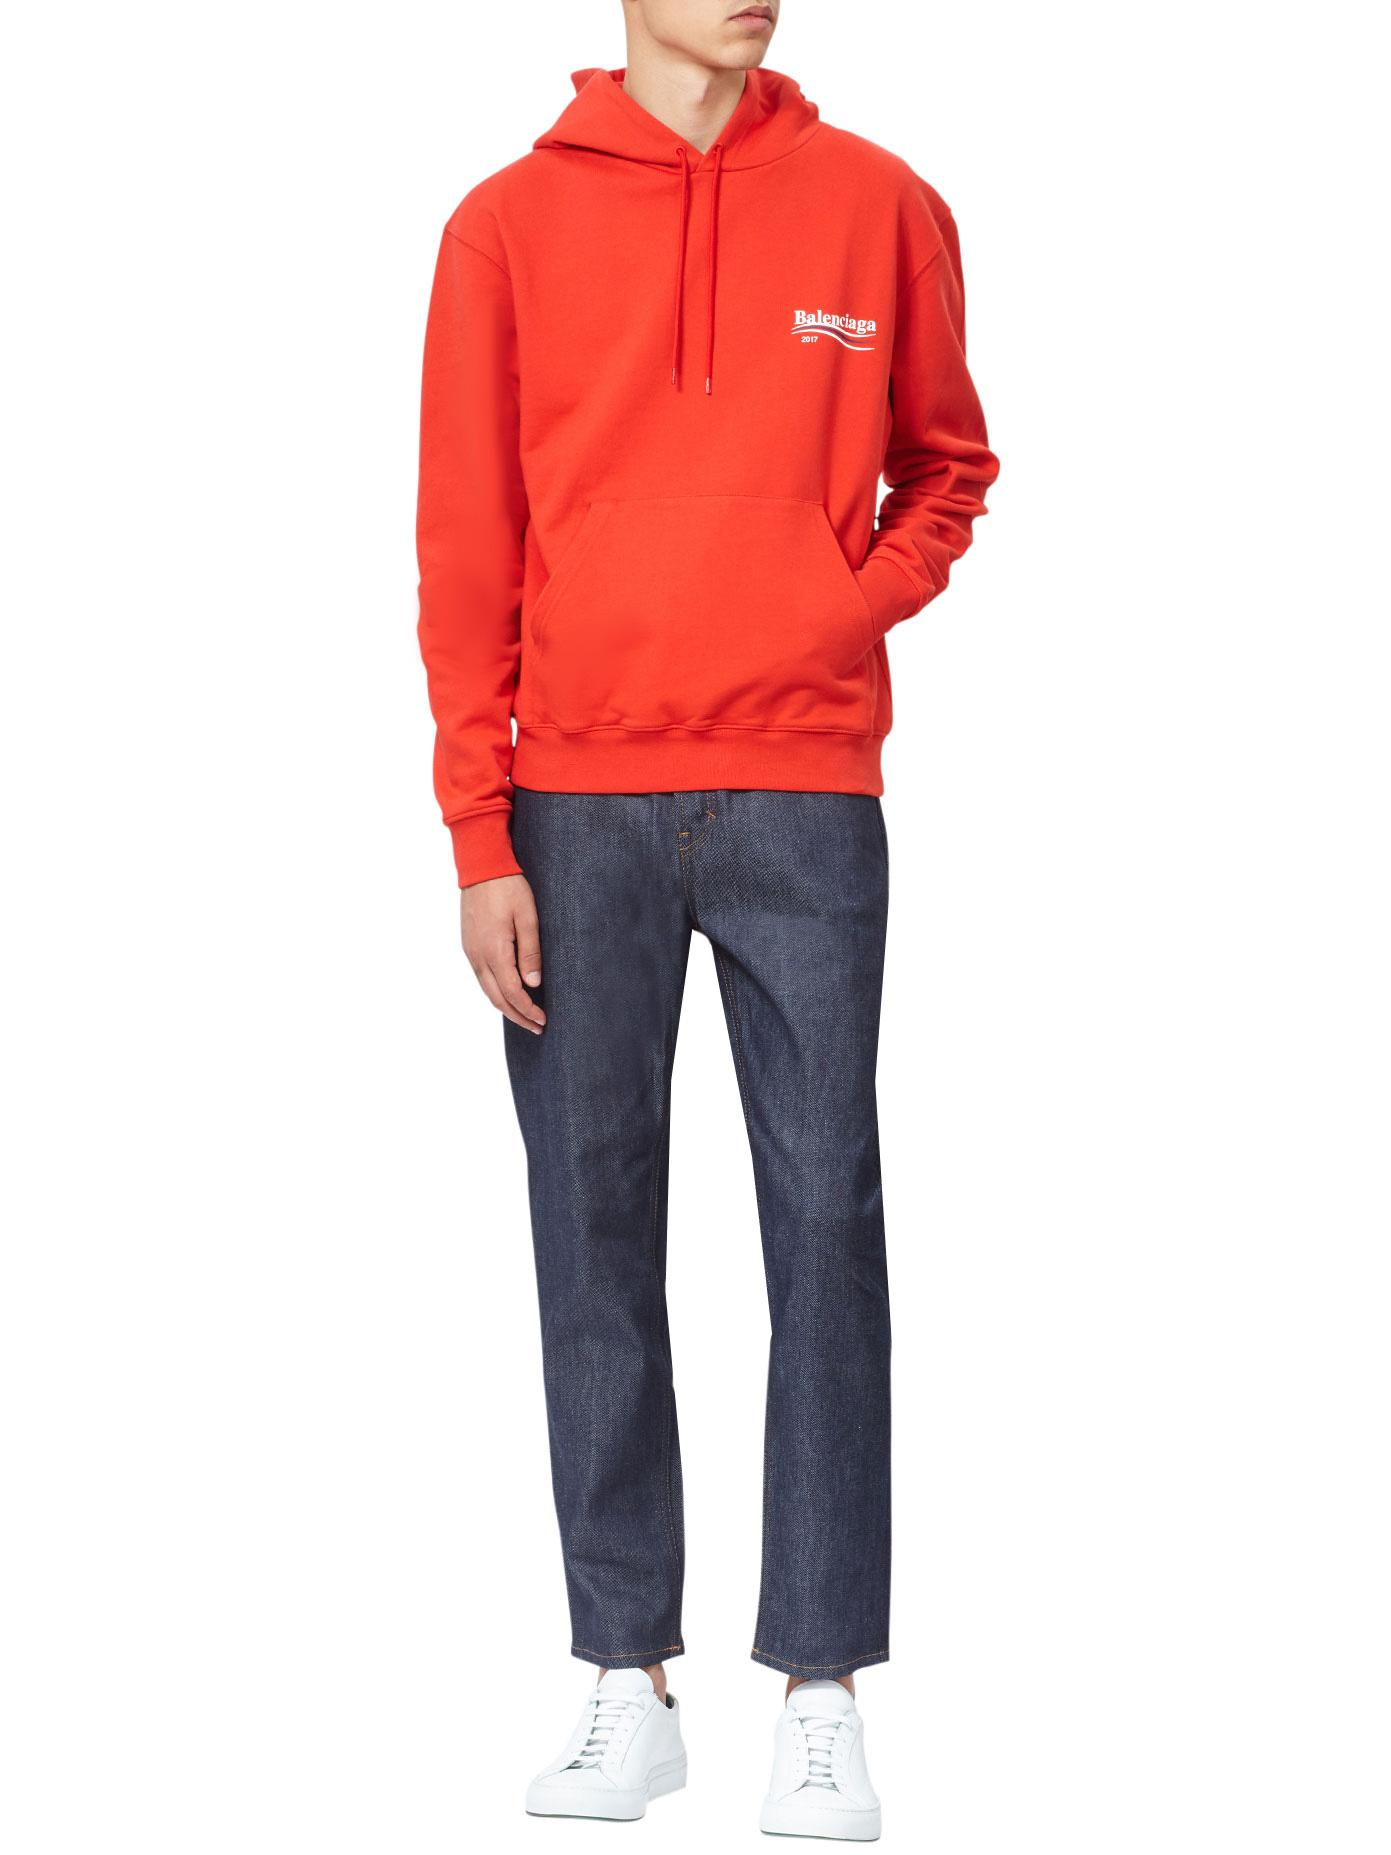 b2f6baebcb2 Lyst - Balenciaga Campaign Logo Cotton Hoodie in Red for Men